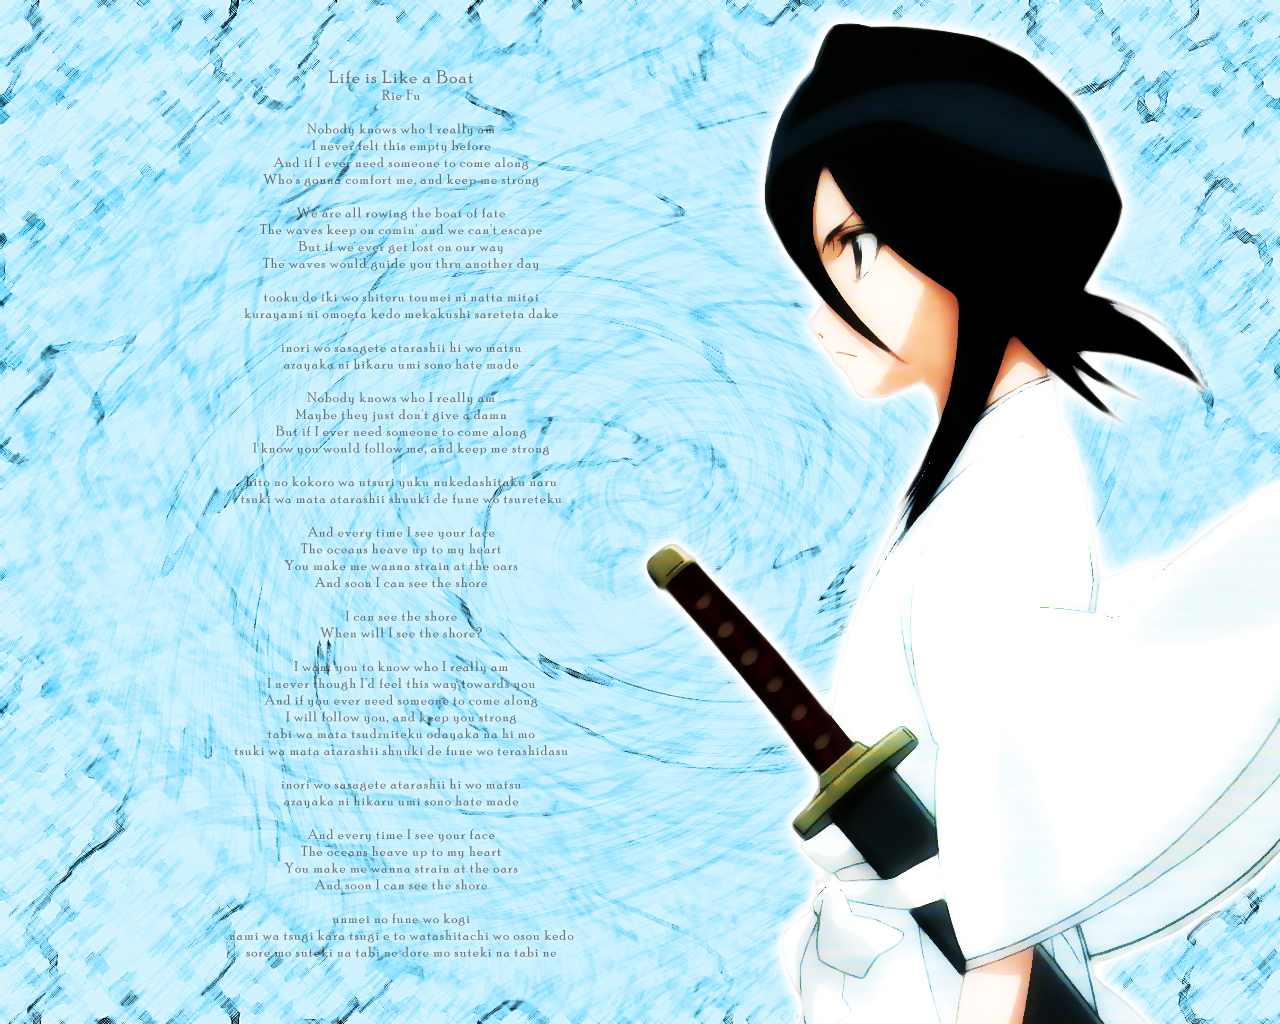 Bleach Wallpaper Life Is Like A Boat Minitokyo The pierces nobody knows lyrics. wallpapers minitokyo